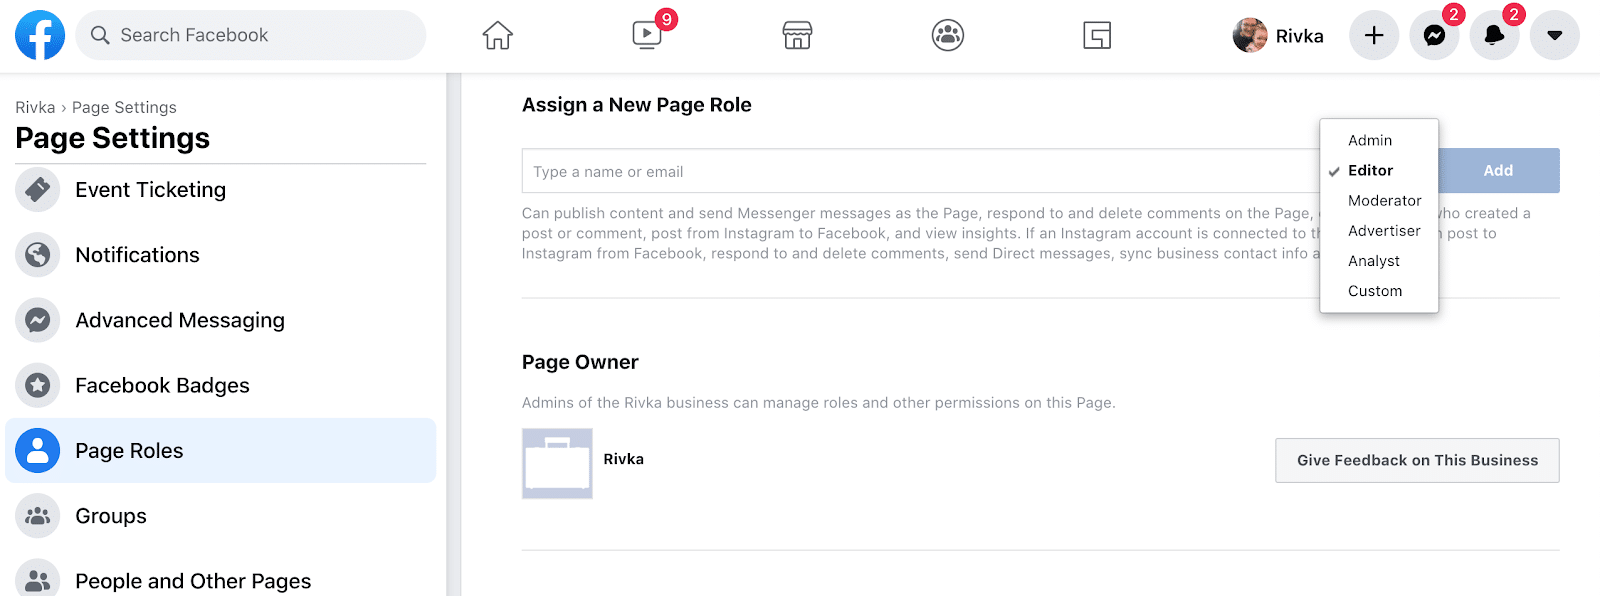 page settings and roles for social media policy